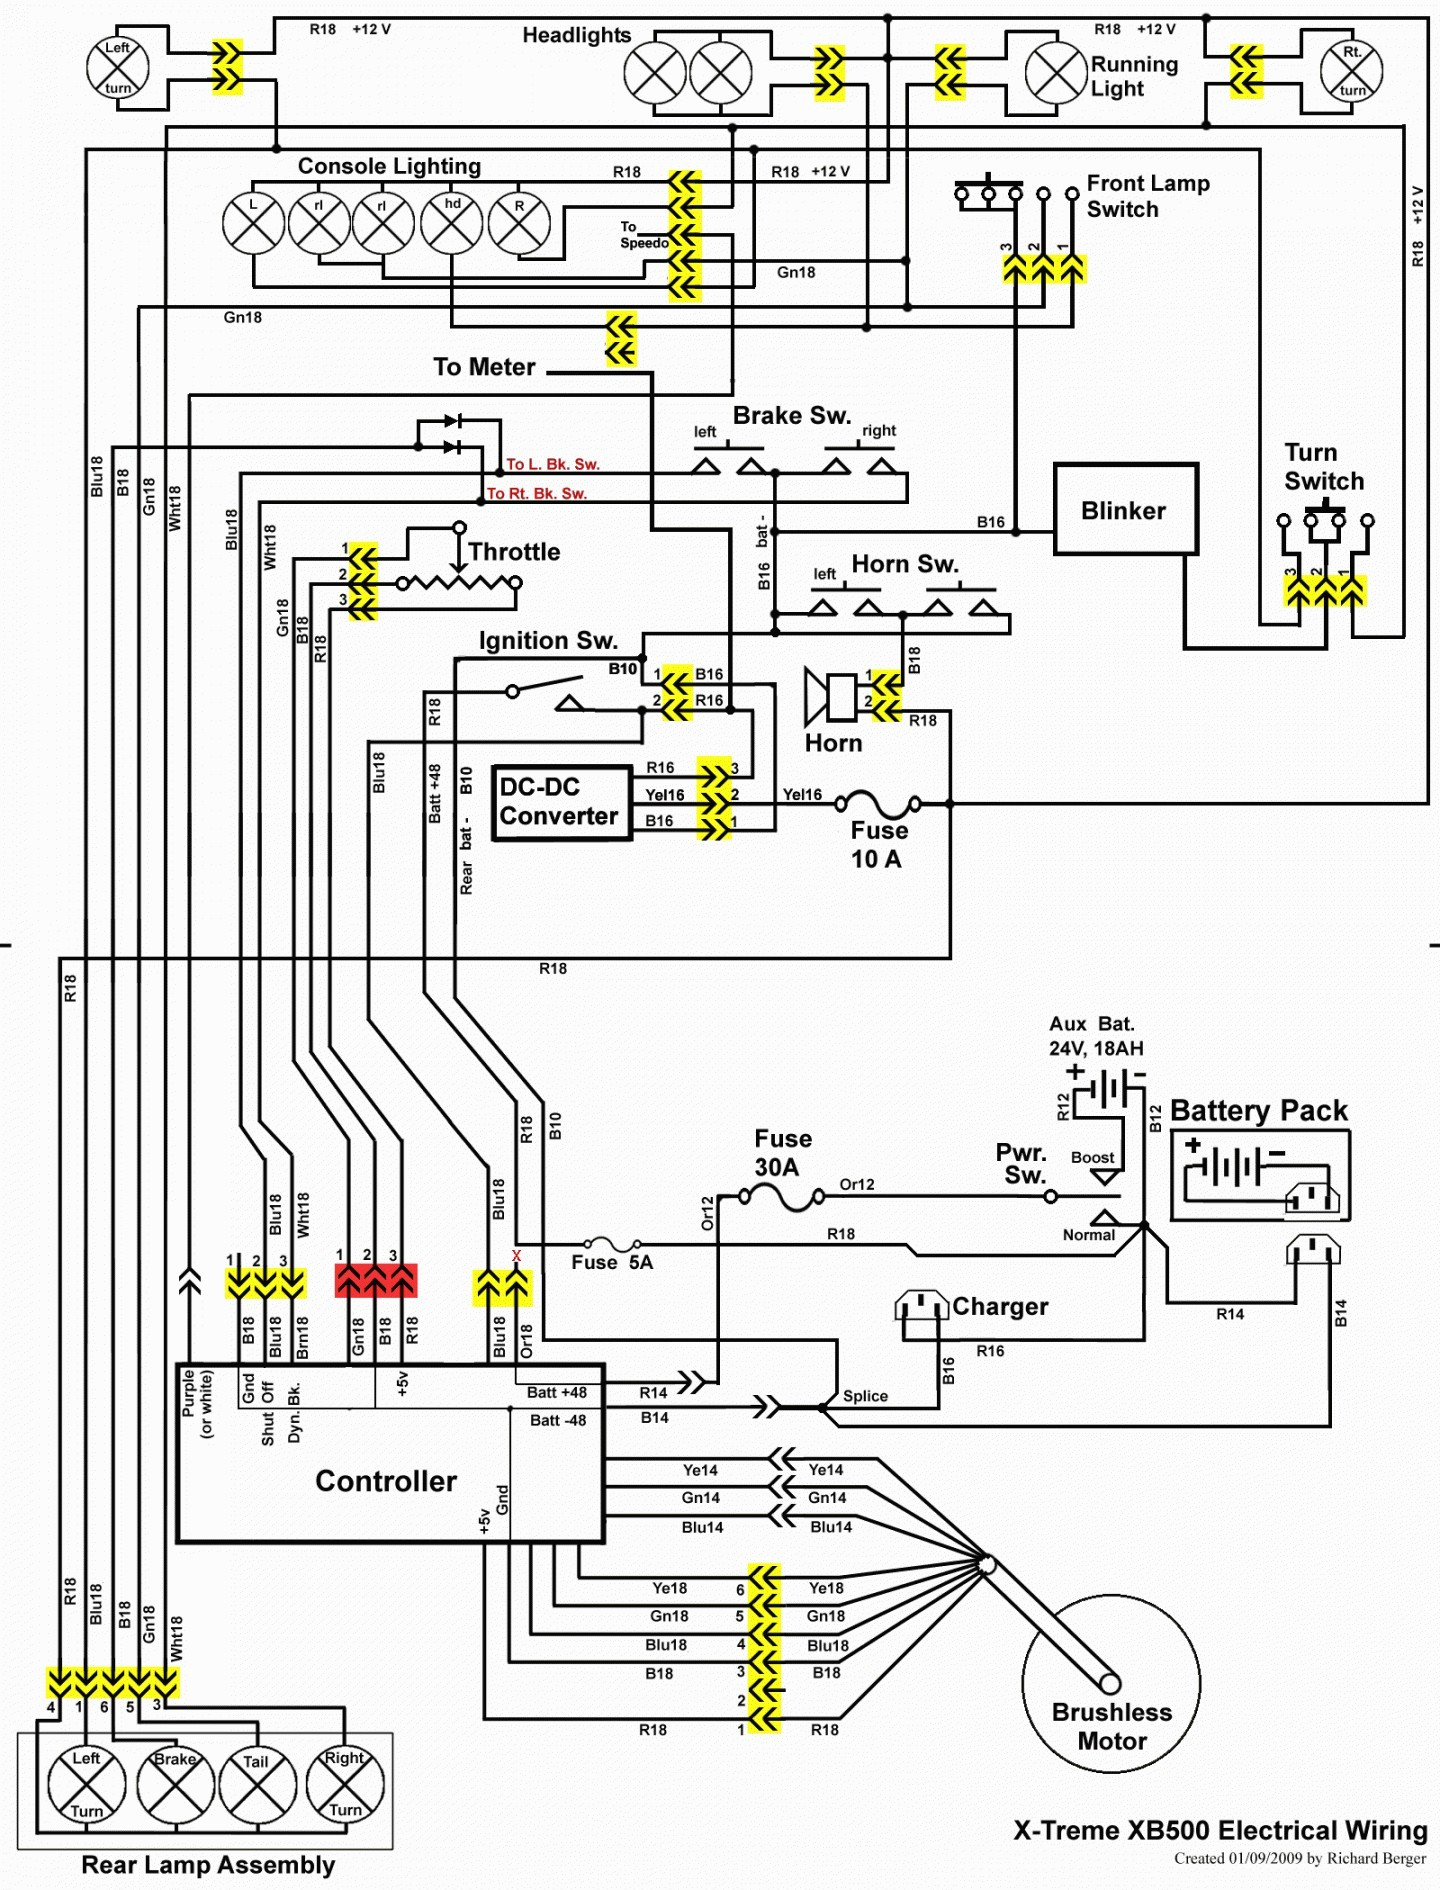 wire diagram tao tao vip wiring diagram Taotao Ata 50 Wiring Diagram taotao 50 wiring diagram wiring diagram